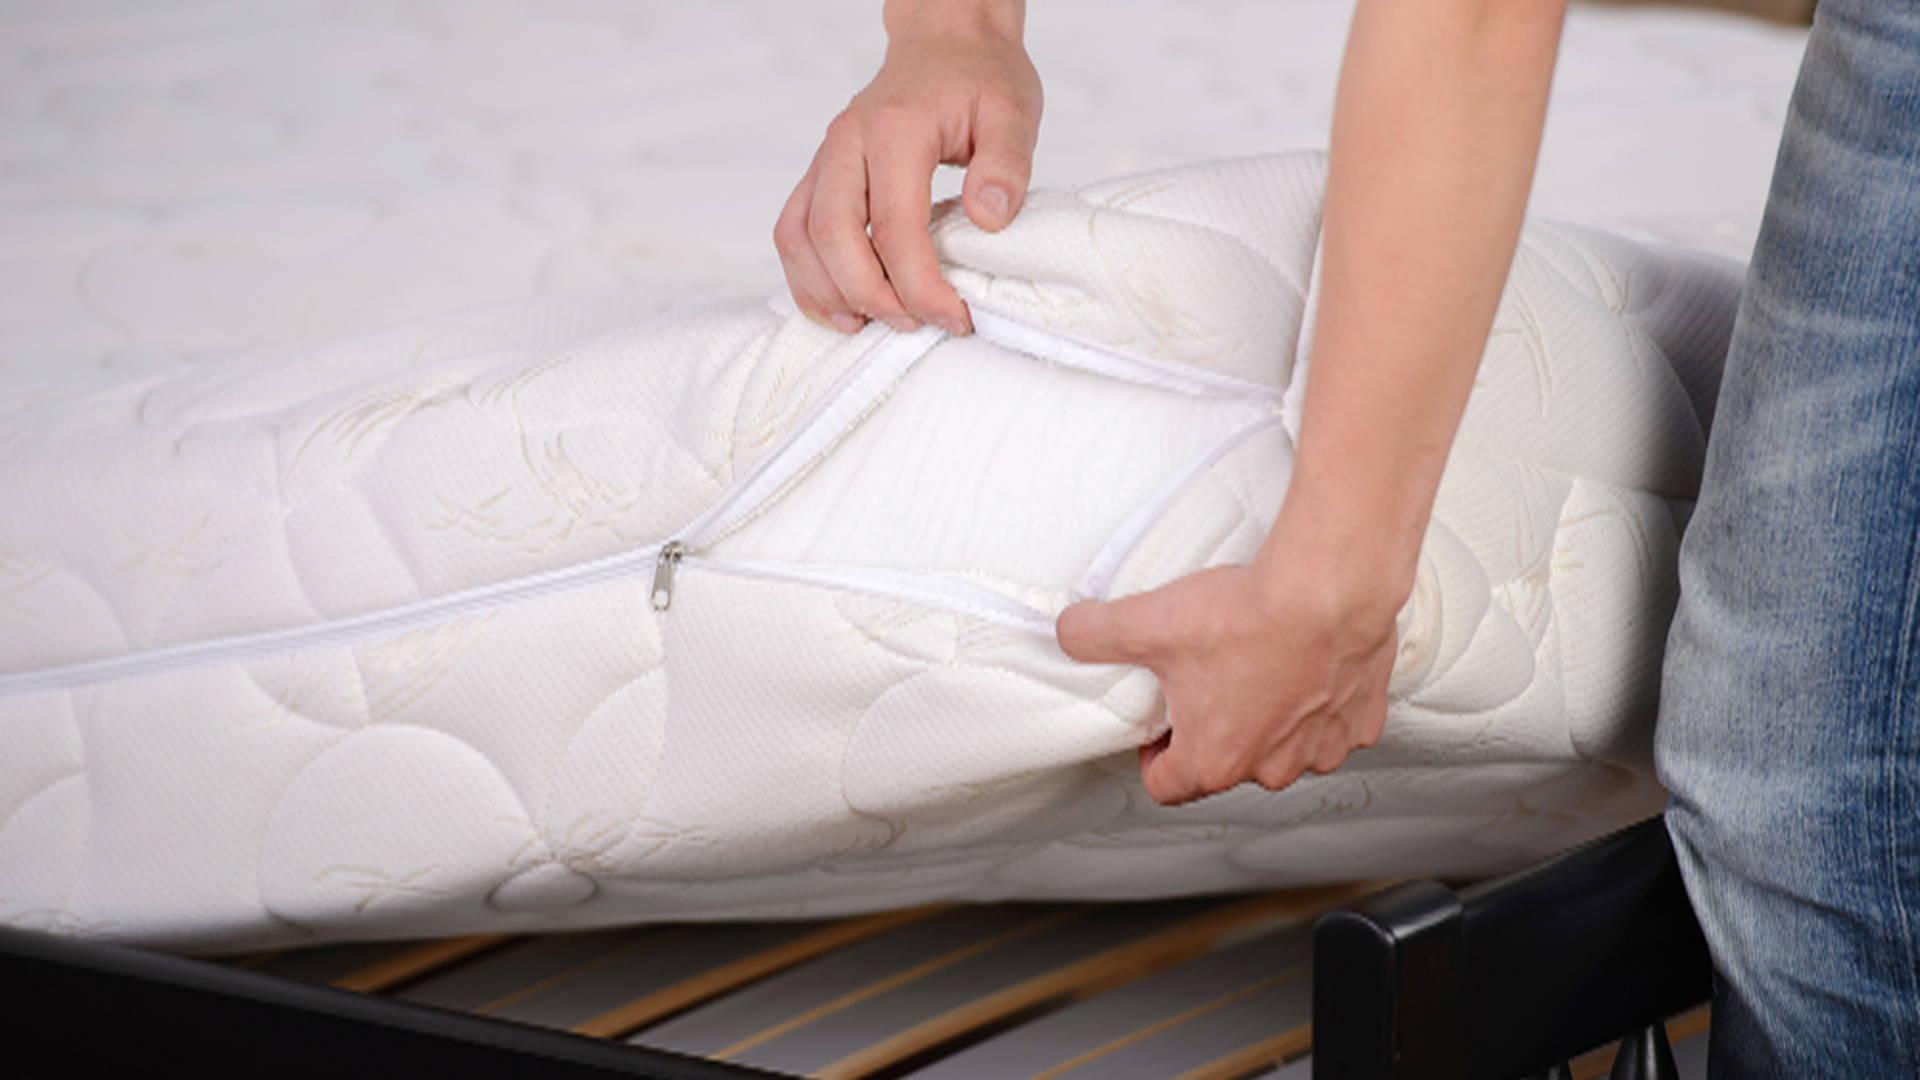 How to clean a mattress - TODAY.com